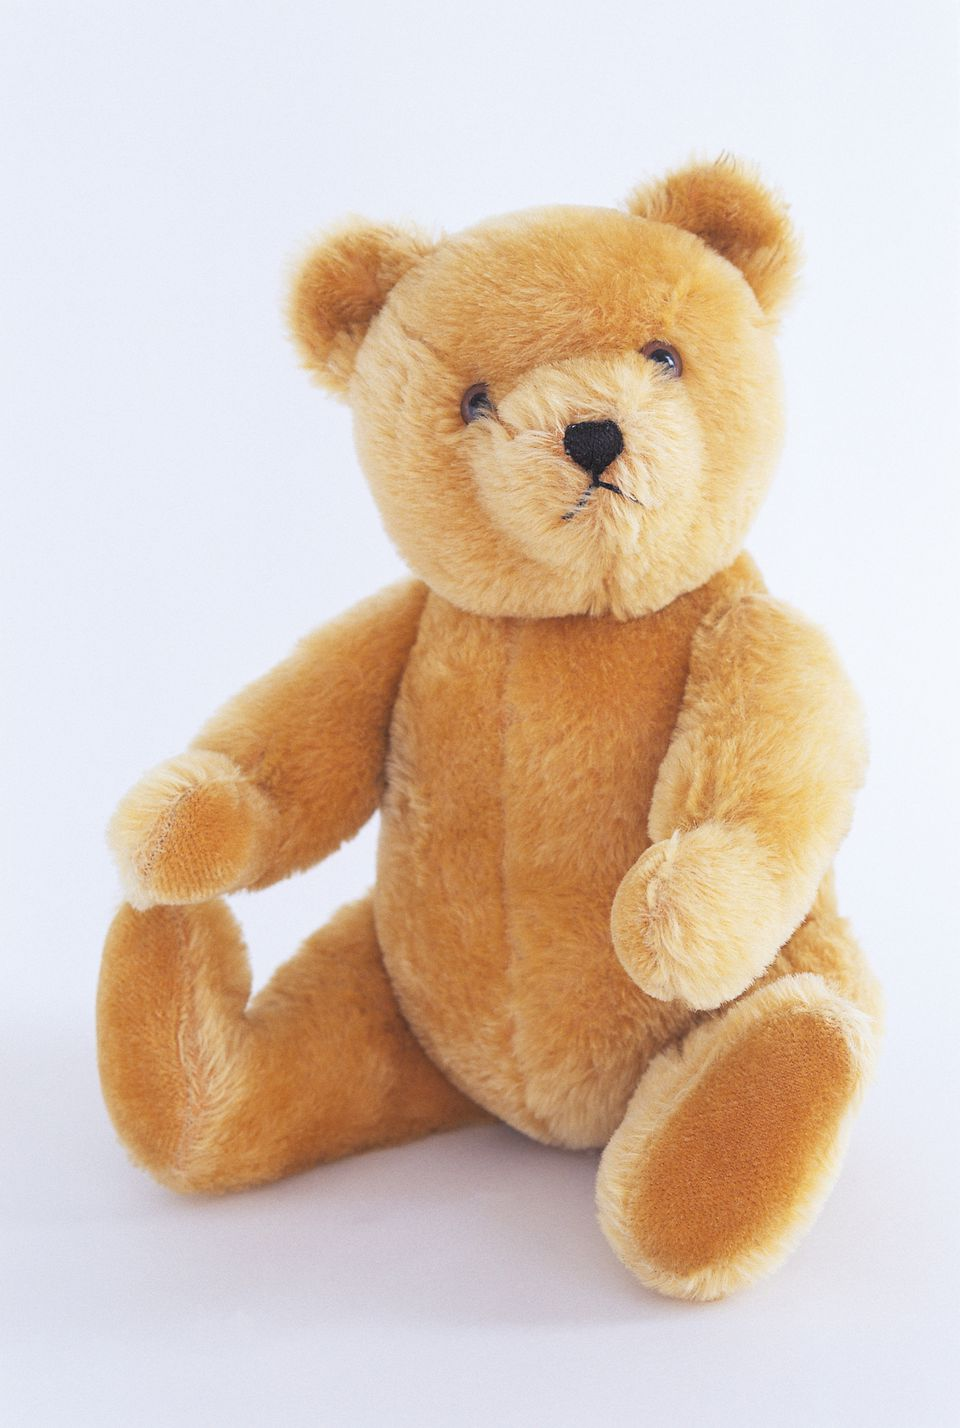 Sizzling image intended for printable teddy bear patterns